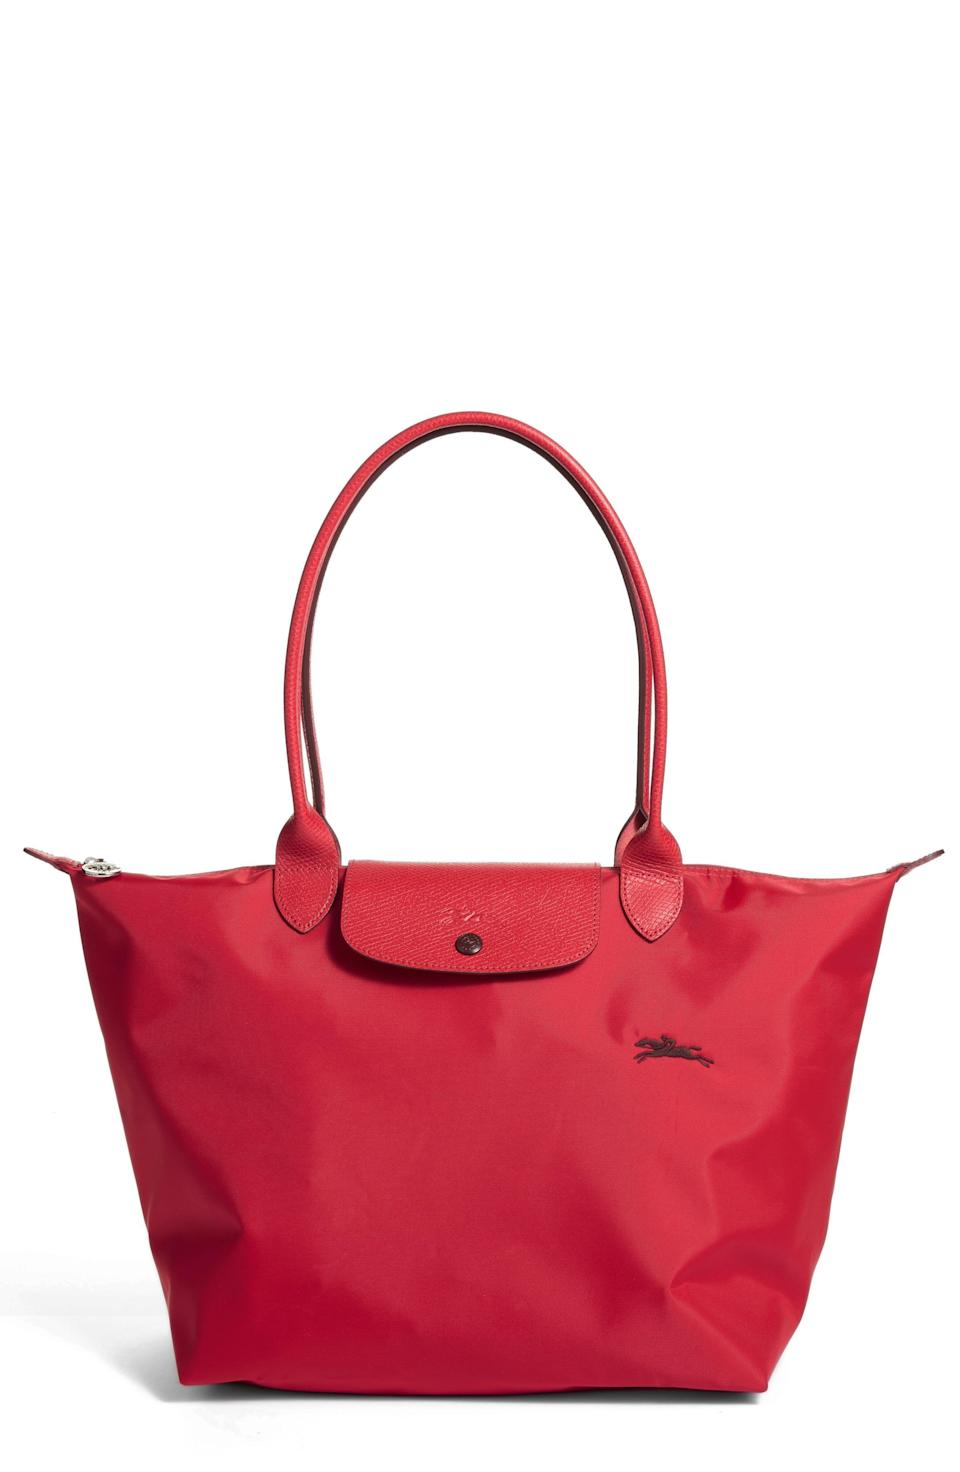 """<p><strong>LONGCHAMP</strong></p><p>nordstrom.com</p><p><a href=""""https://go.redirectingat.com?id=74968X1596630&url=https%3A%2F%2Fwww.nordstrom.com%2Fs%2Flongchamp-le-pliage-club-tote%2F6111365&sref=https%3A%2F%2Fwww.townandcountrymag.com%2Fstyle%2Ffashion-trends%2Fg36557314%2Fnordstrom-half-yearly-sale-may-2021%2F"""" rel=""""nofollow noopener"""" target=""""_blank"""" data-ylk=""""slk:Shop Now"""" class=""""link rapid-noclick-resp"""">Shop Now</a></p><p>$124</p><p><em>Original Price: $155</em></p>"""